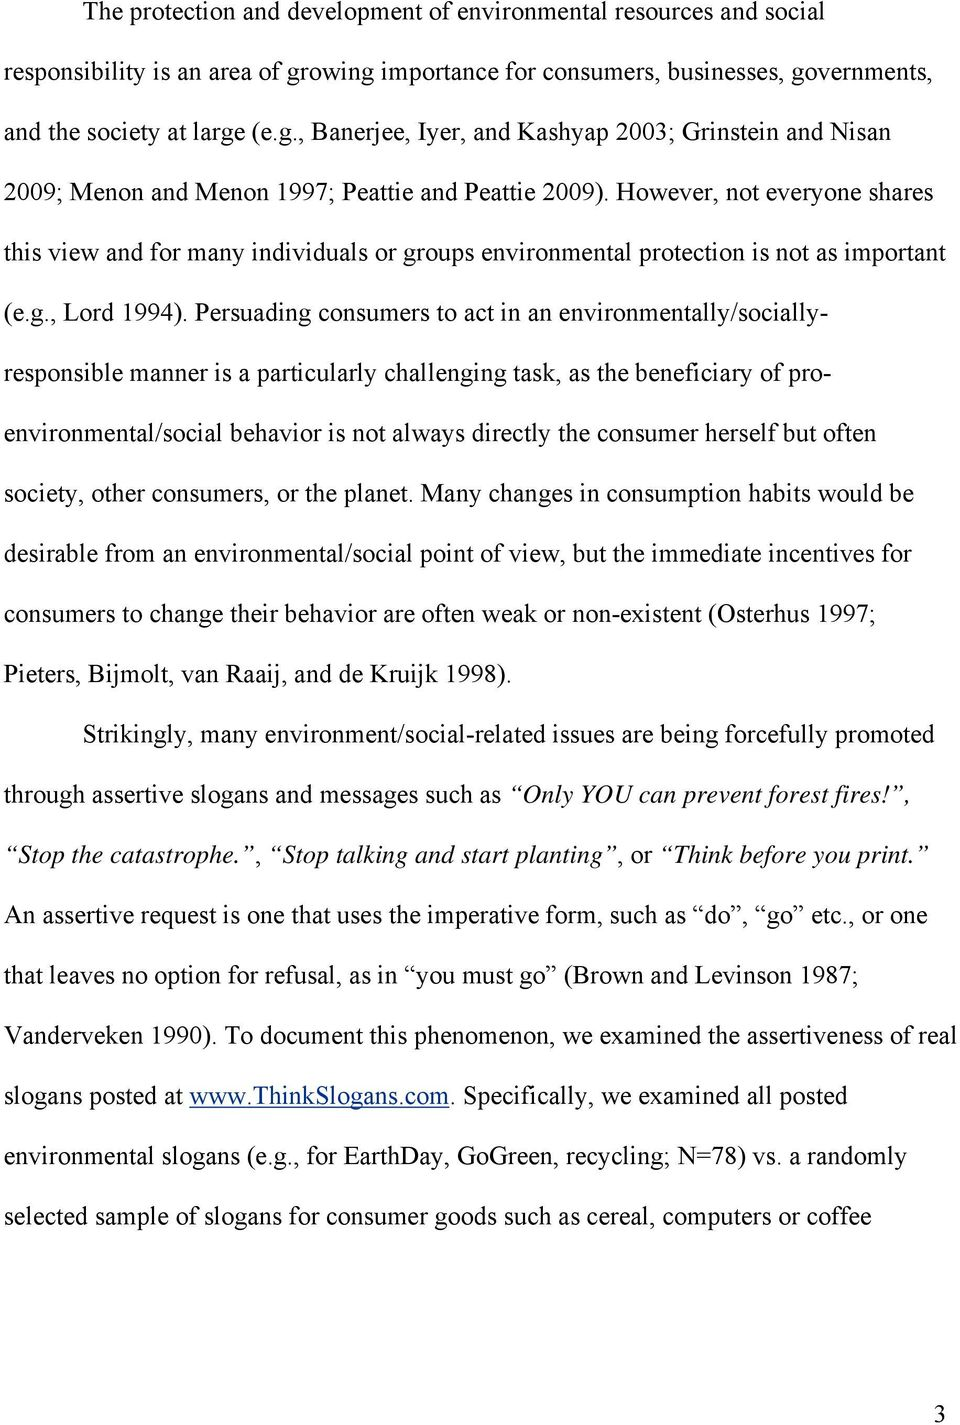 However, not everyone shares this view and for many individuals or groups environmental protection is not as important (e.g., Lord 1994).